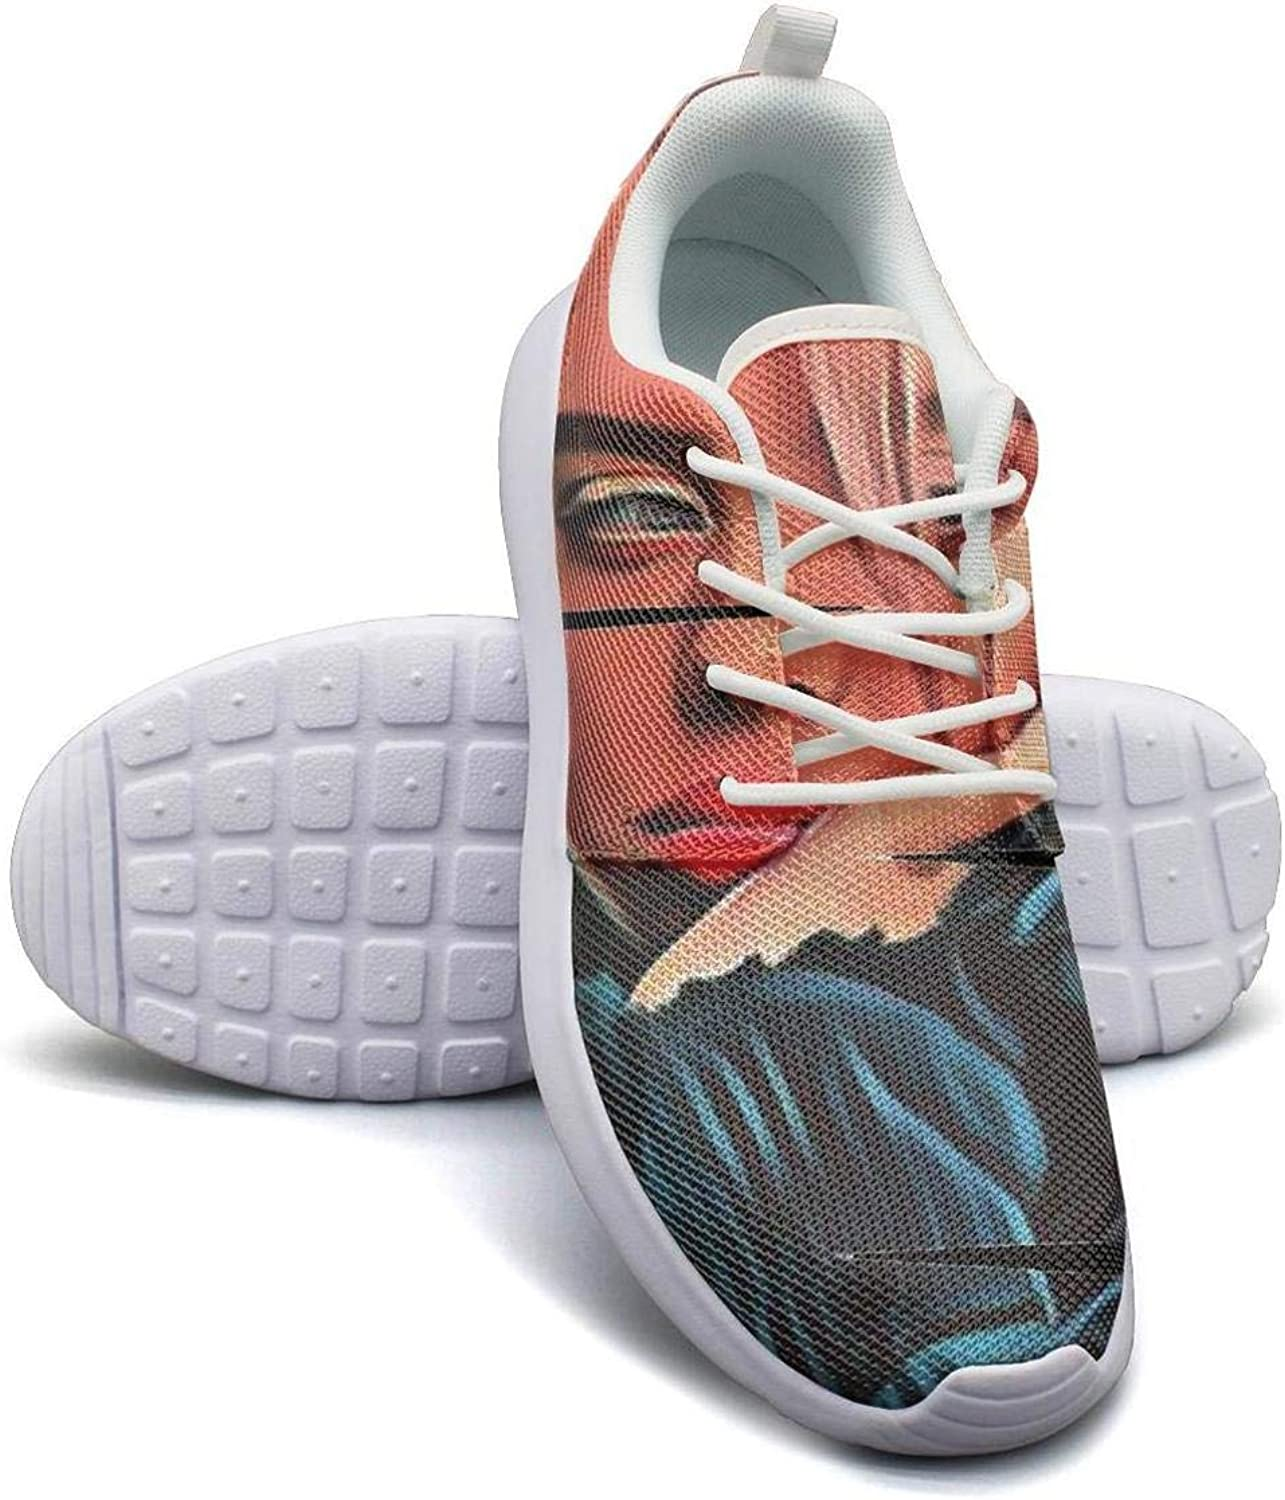 Gym shoes for Man Highly billie-eilish-art-1- Running shoes